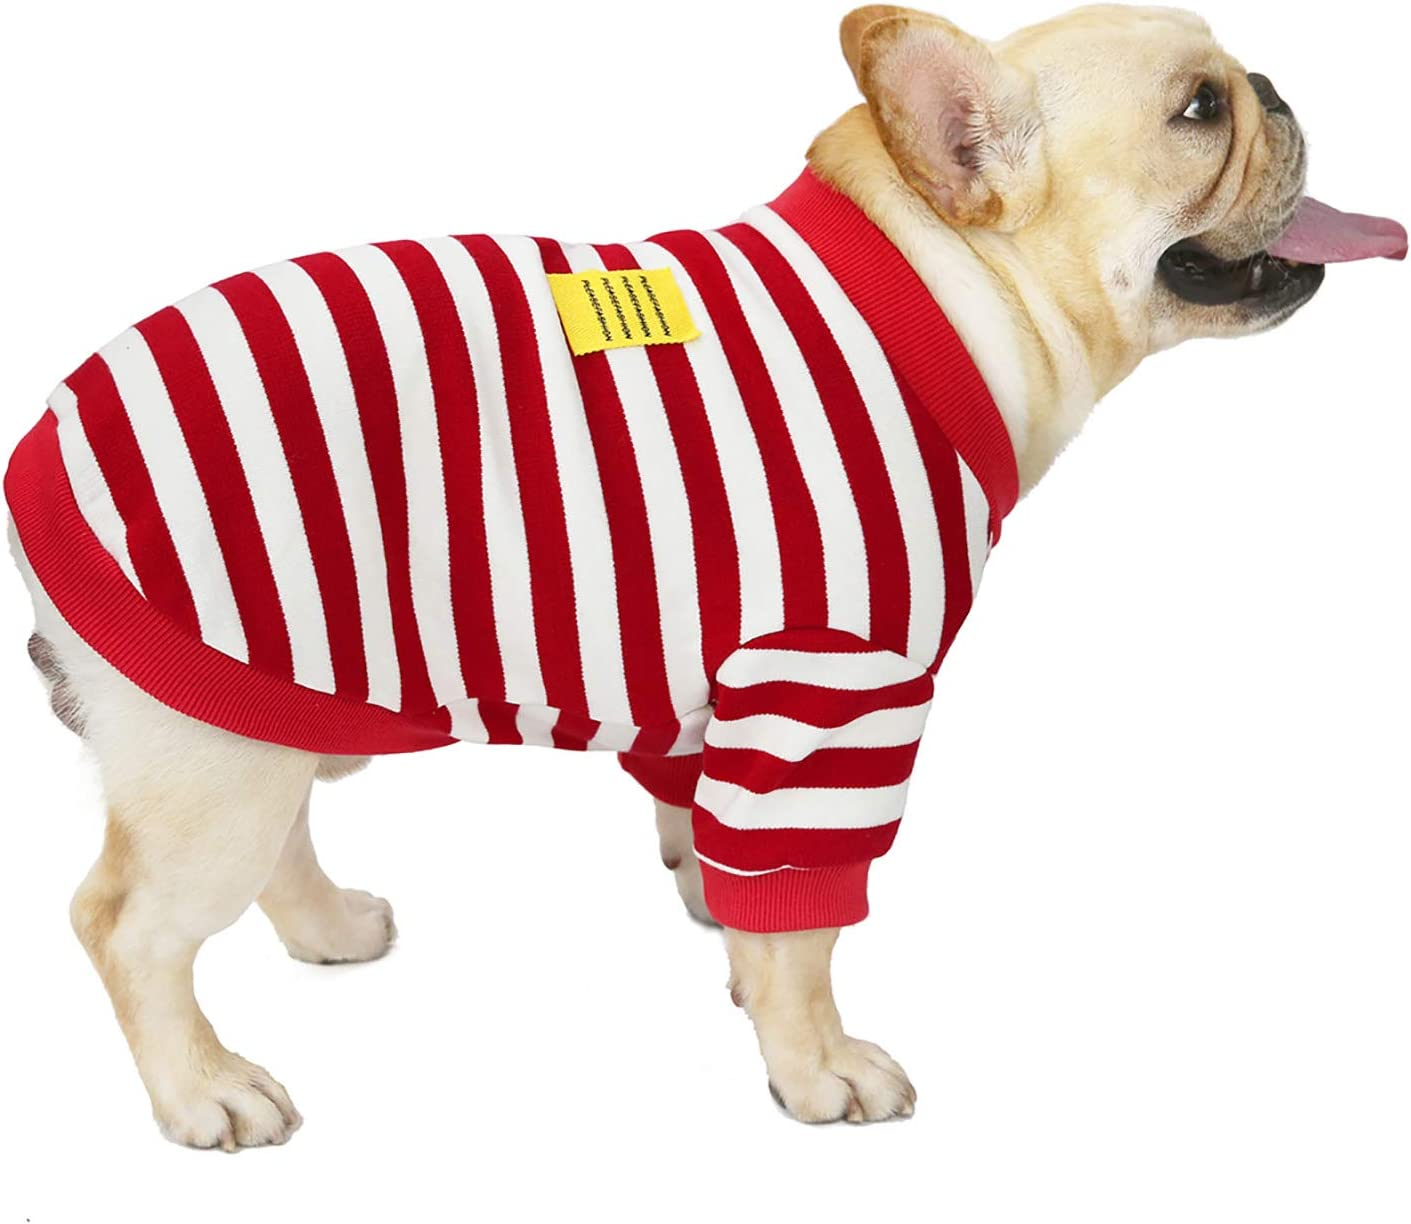 smalllee/_lucky/_store French Bulldog Clothes for Dogs Boy Girl Striped Sweatshirt Crewneck Jumper Sweater Winter Warm Jacket Coat Pet Puppy Apparel,Black and White,S